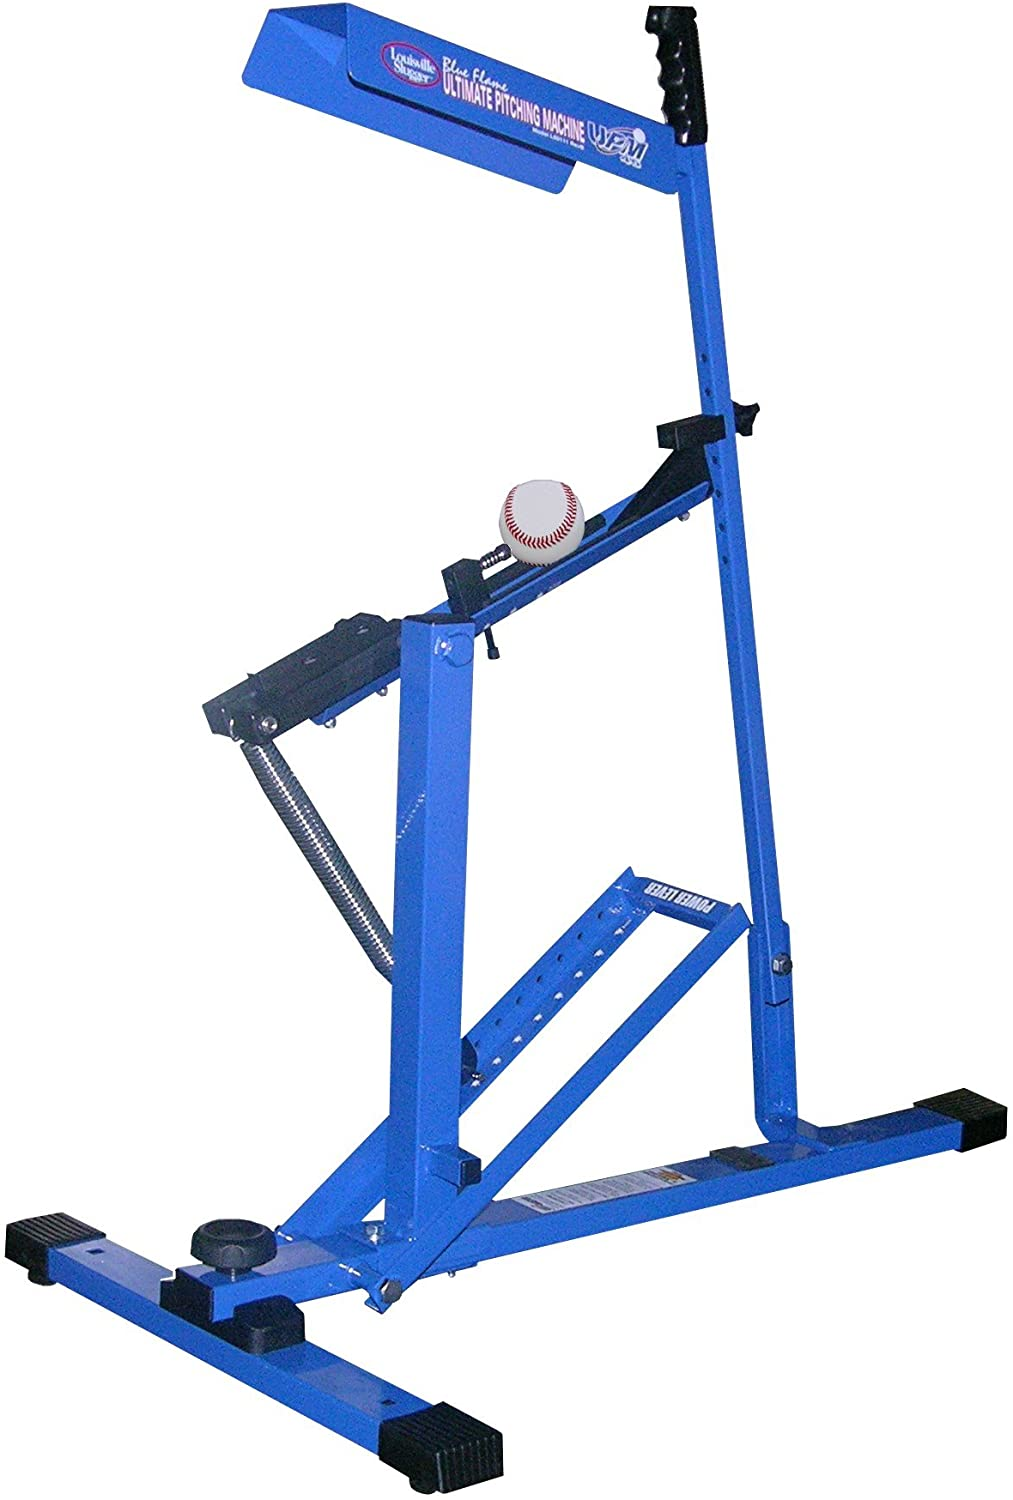 Top 10 Best Pitching Machines 2020 Reviews 1